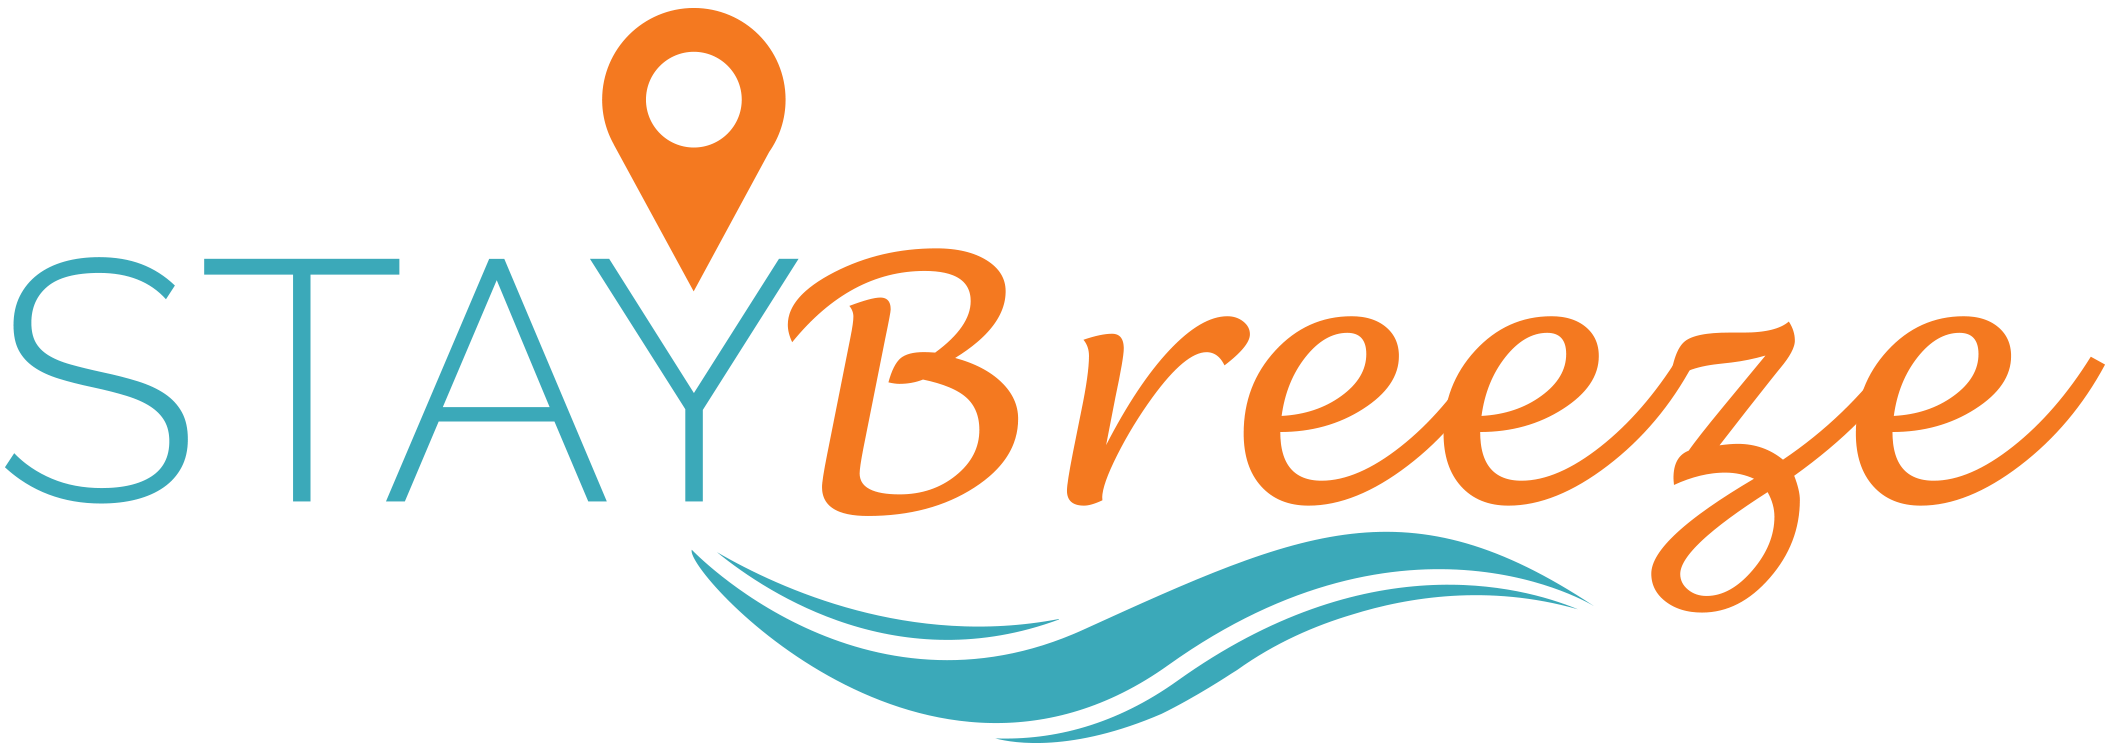 Stay Breeze Vacation Rentals